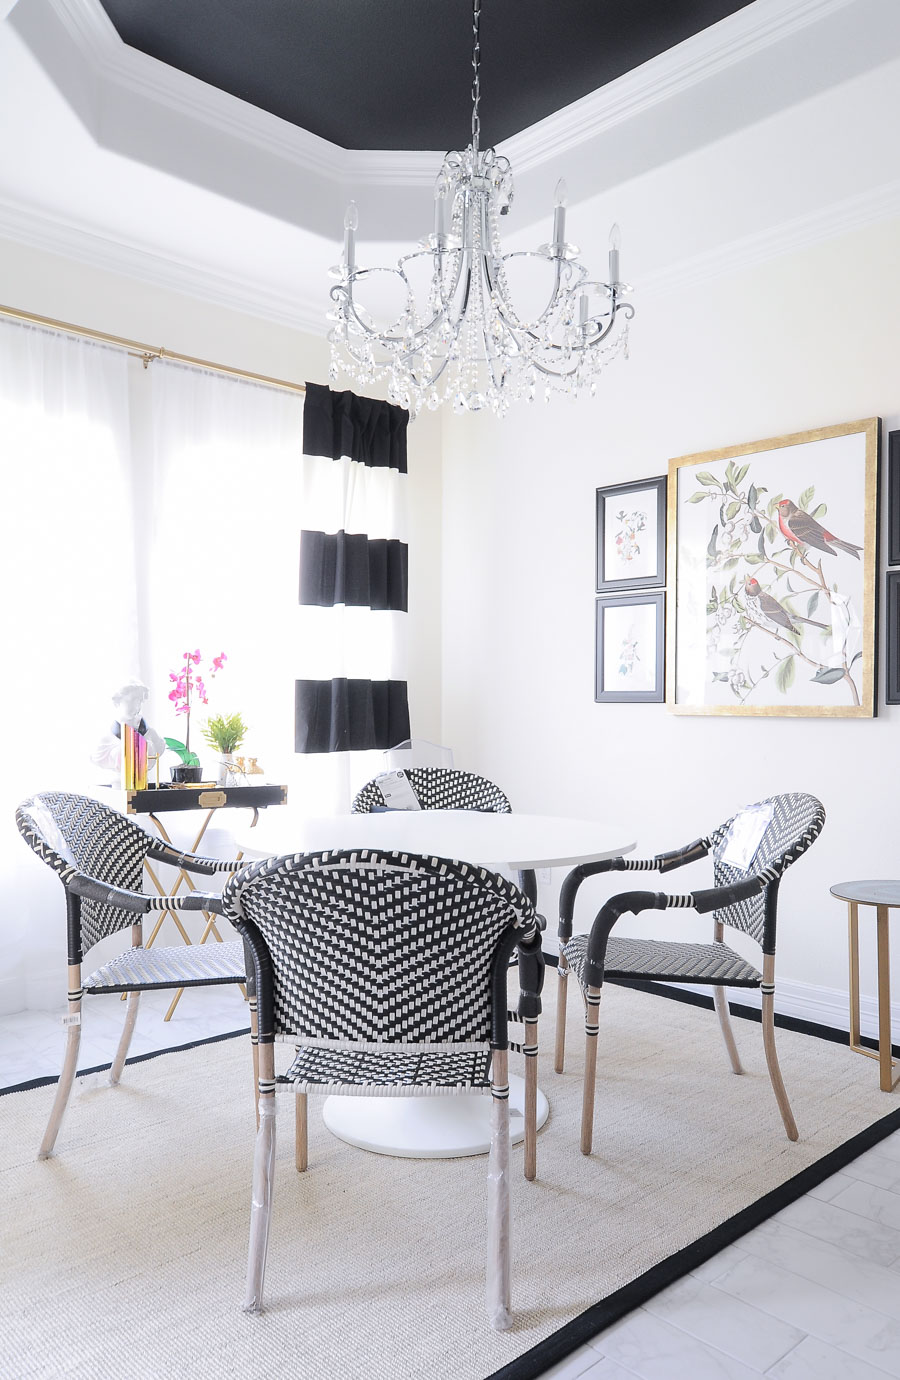 These $44 Parisian Dining Room Chairs look amazing in this small dining space decorated in bold black and white.